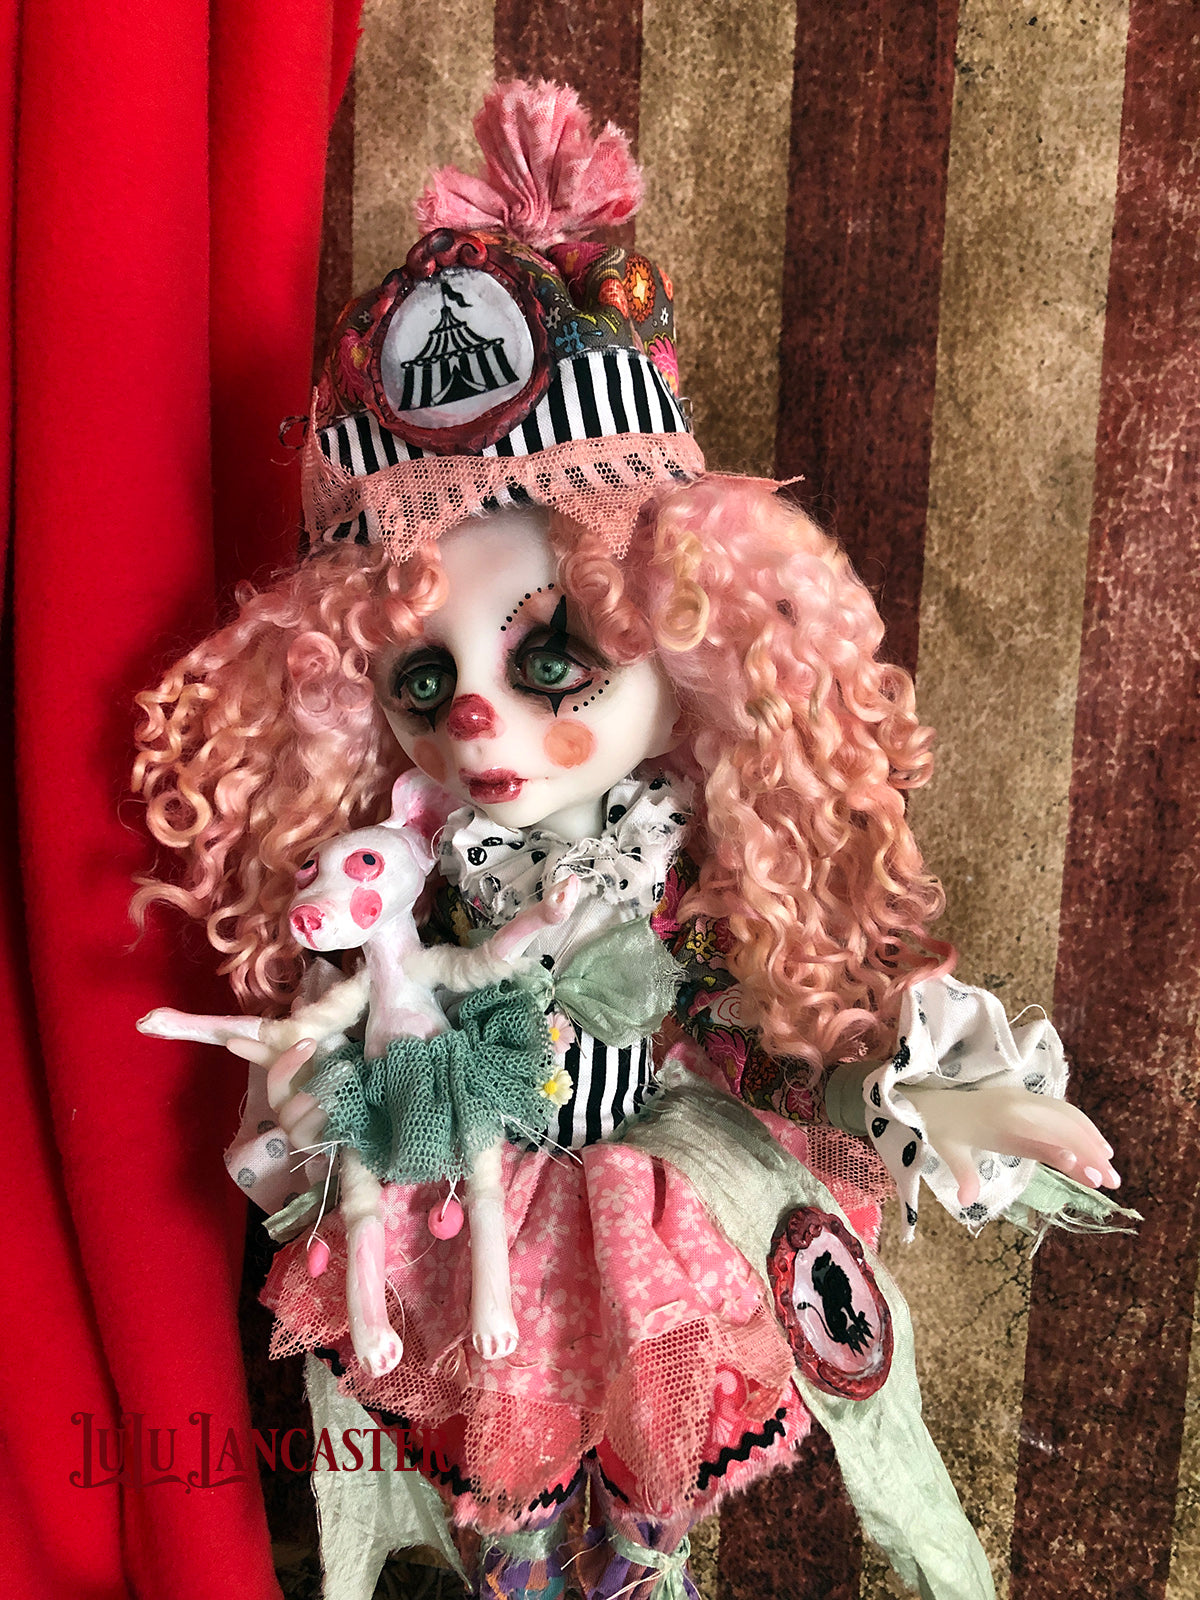 JoJoTrix Poupee the clown and Izze Original LuLu Lancaster Art Dolls